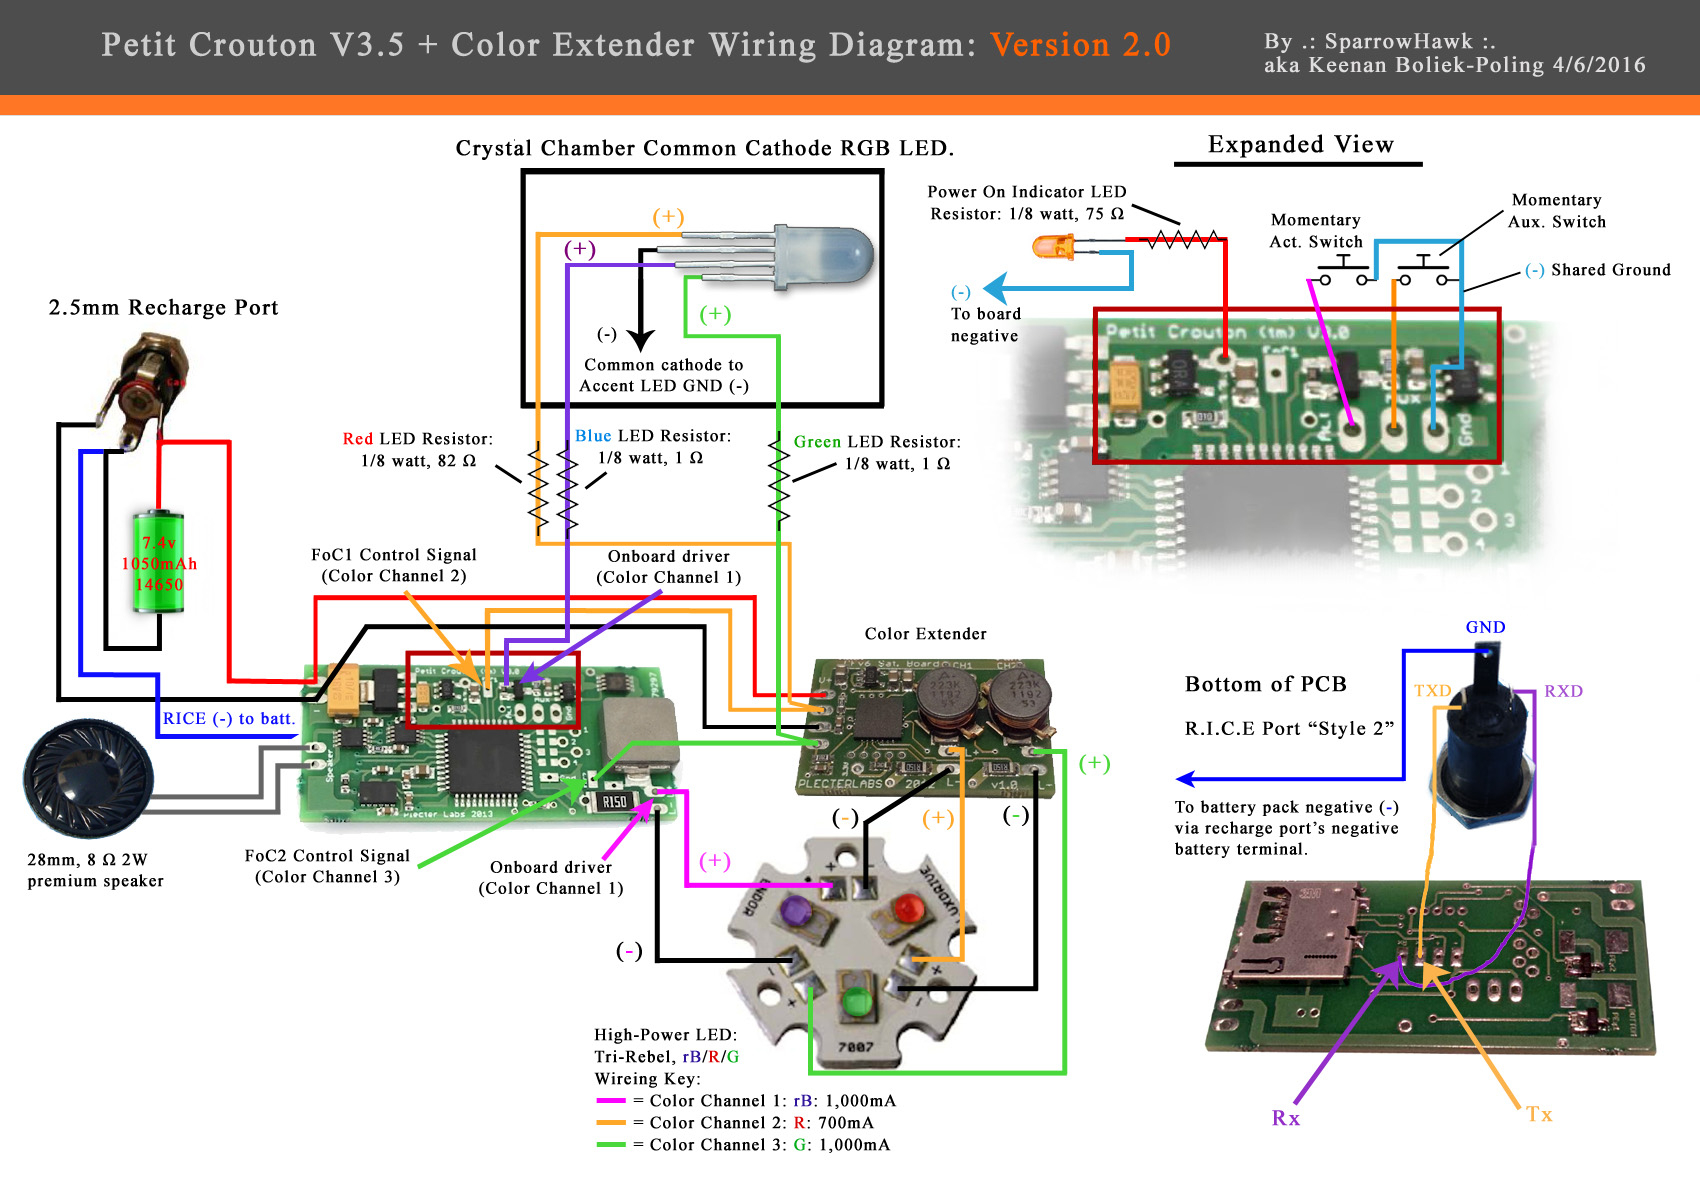 Wiring Diagram For The Petit Crouton V3.5/4.0 + Color Extender - Nano Biscotte V4 Wiring Diagram